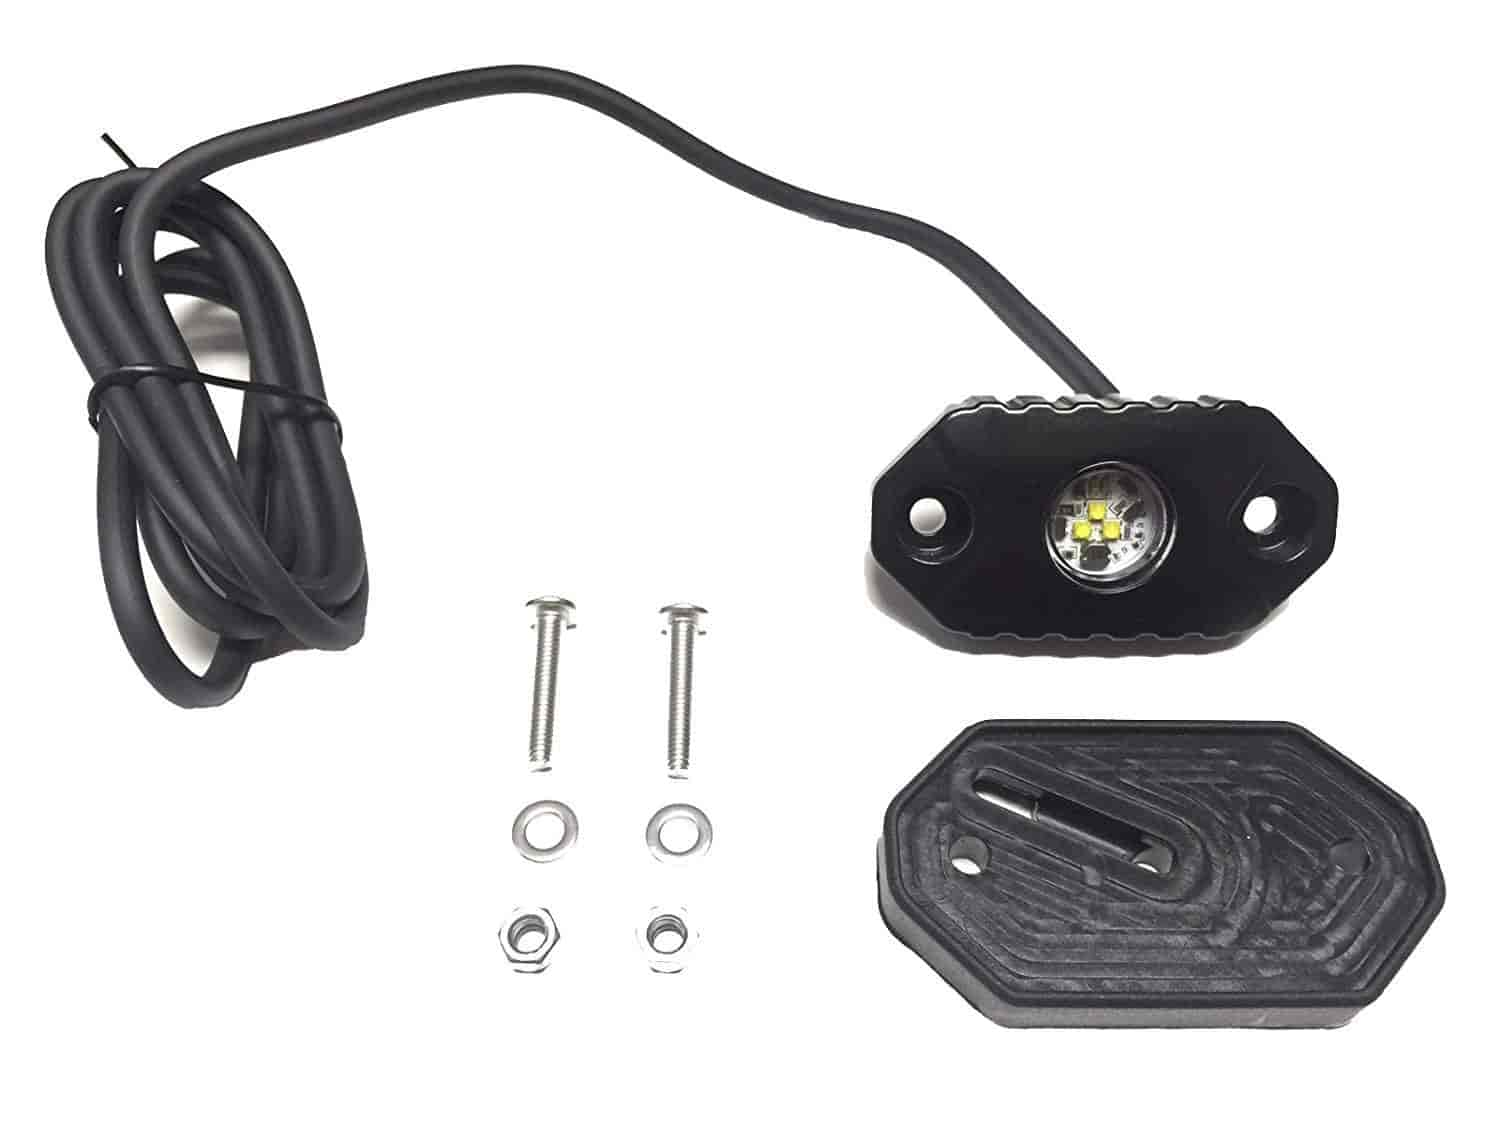 Buy CREE LED Rock Light Neon Replacement - Super Bright Work